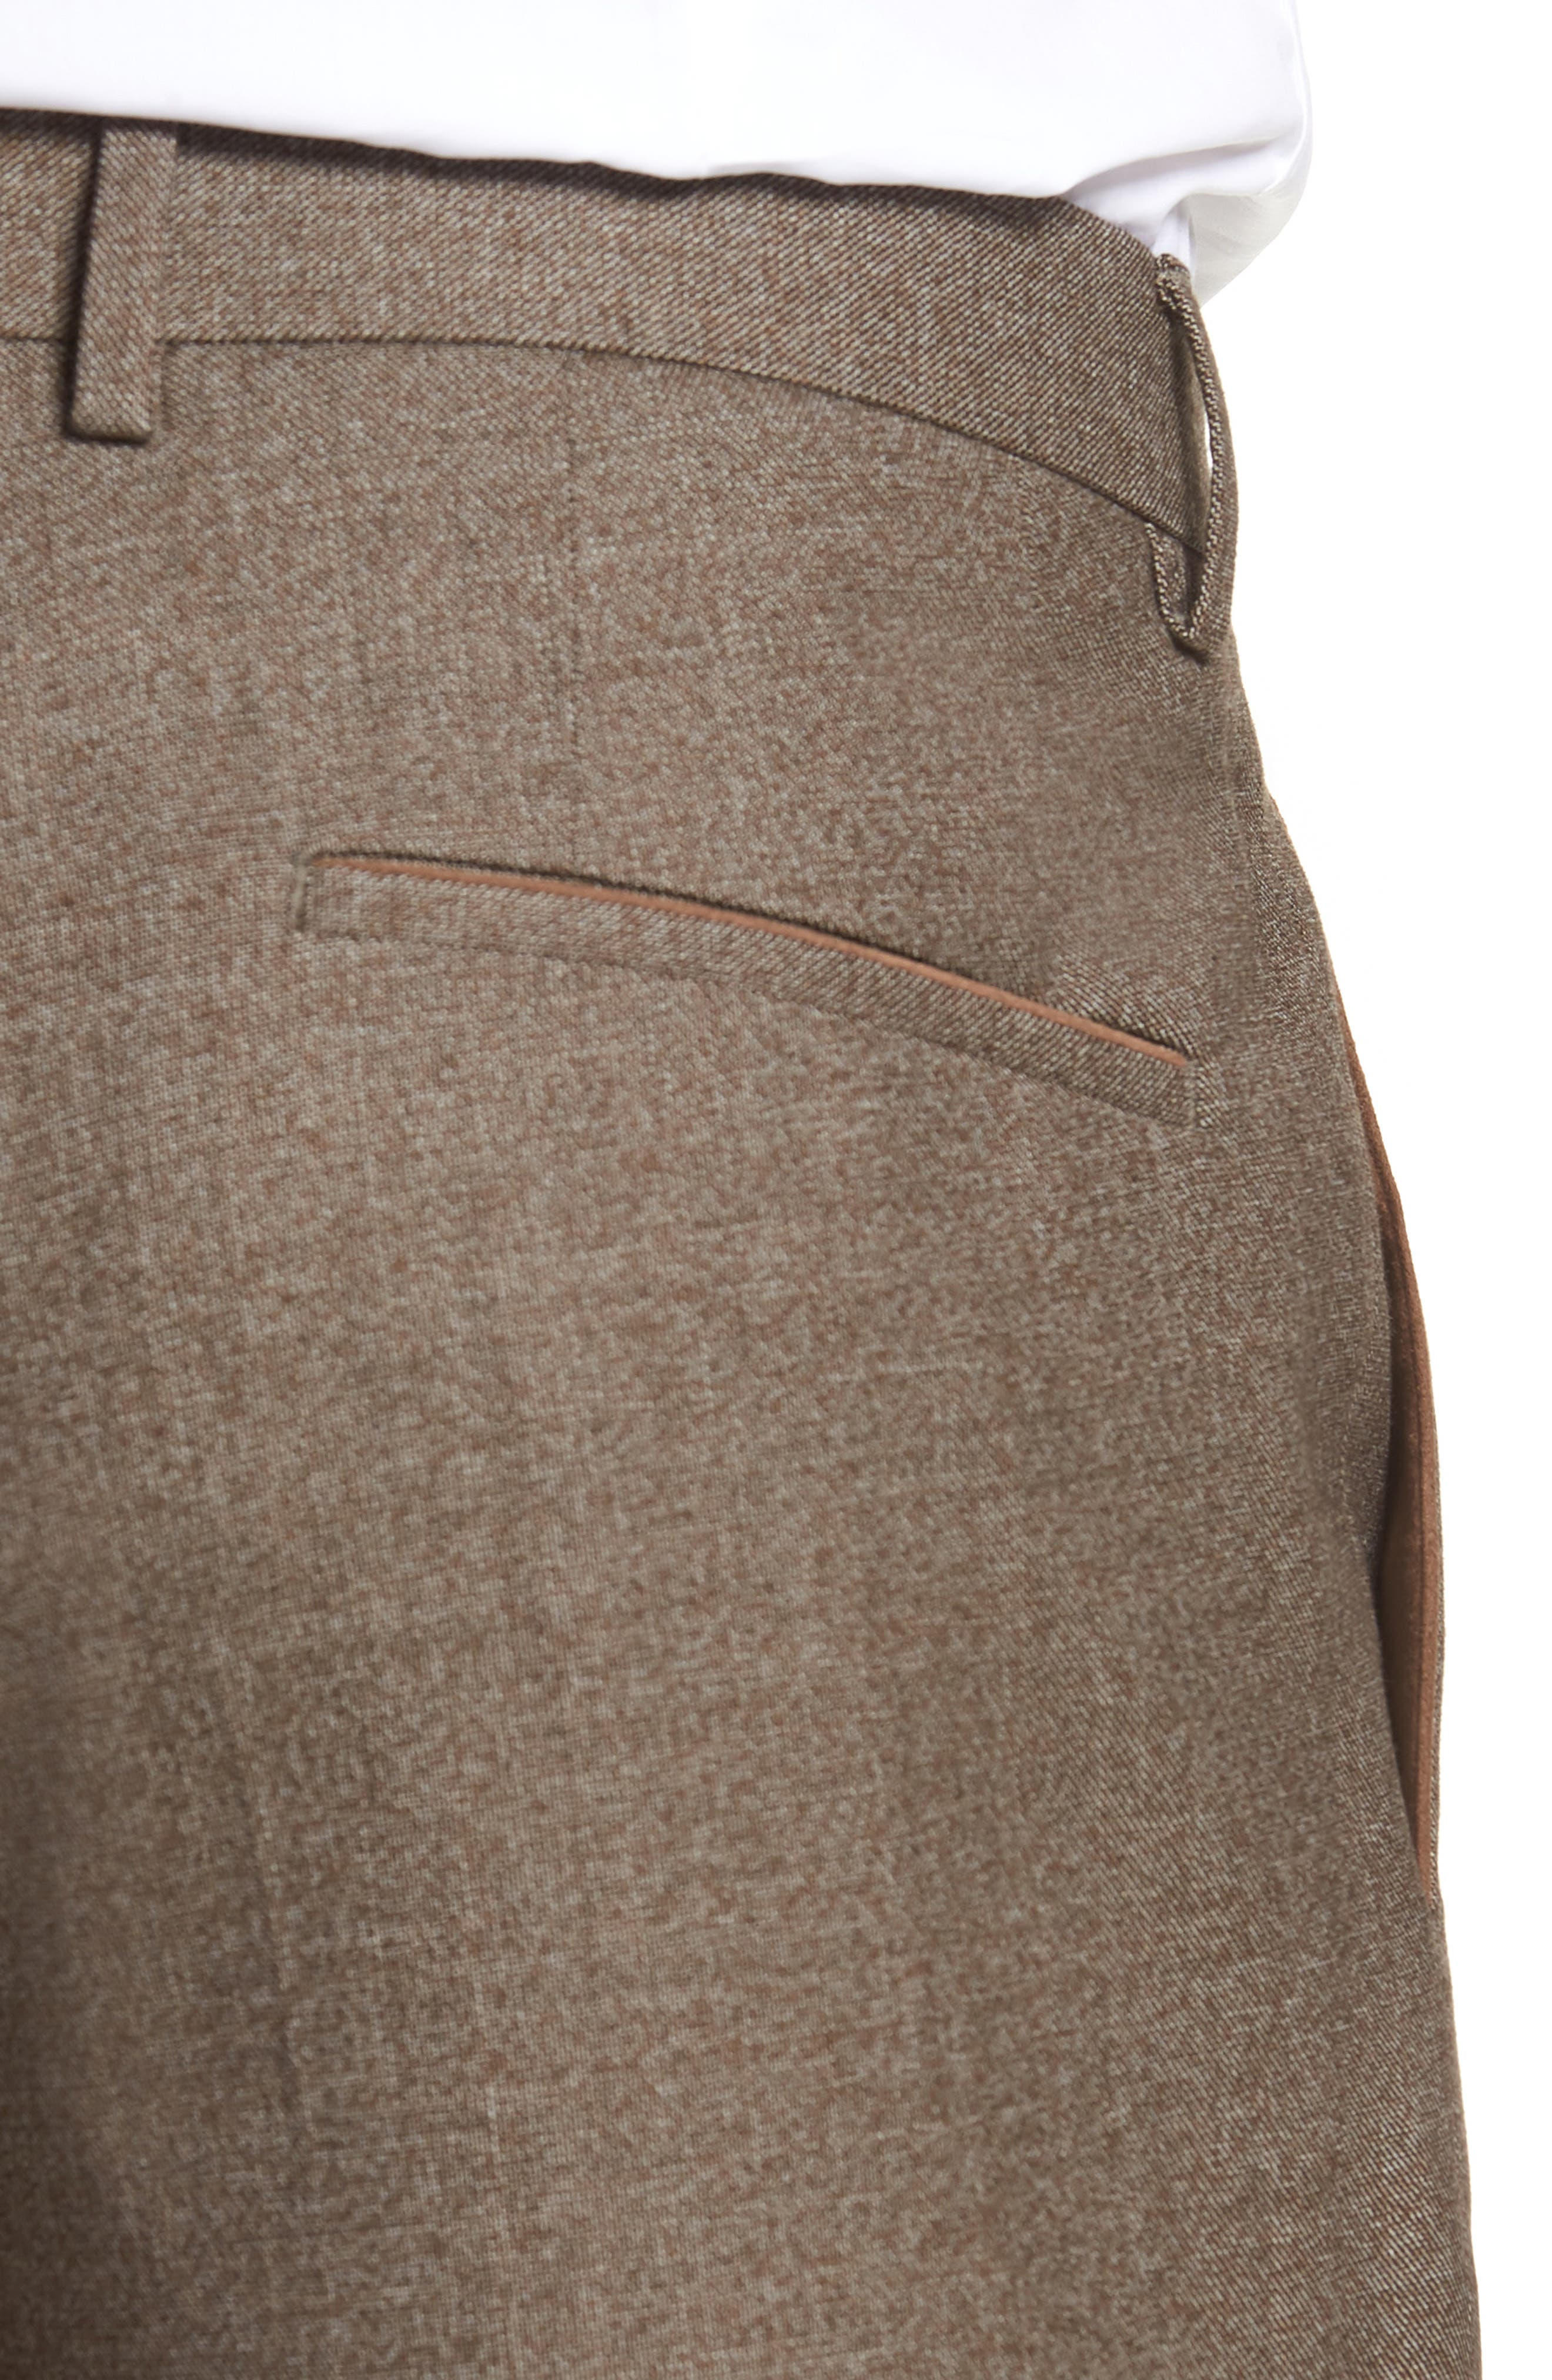 Giro Flat Front Solid Wool & Cotton Trousers,                             Alternate thumbnail 4, color,                             LIGHT/ PASTEL BROWN